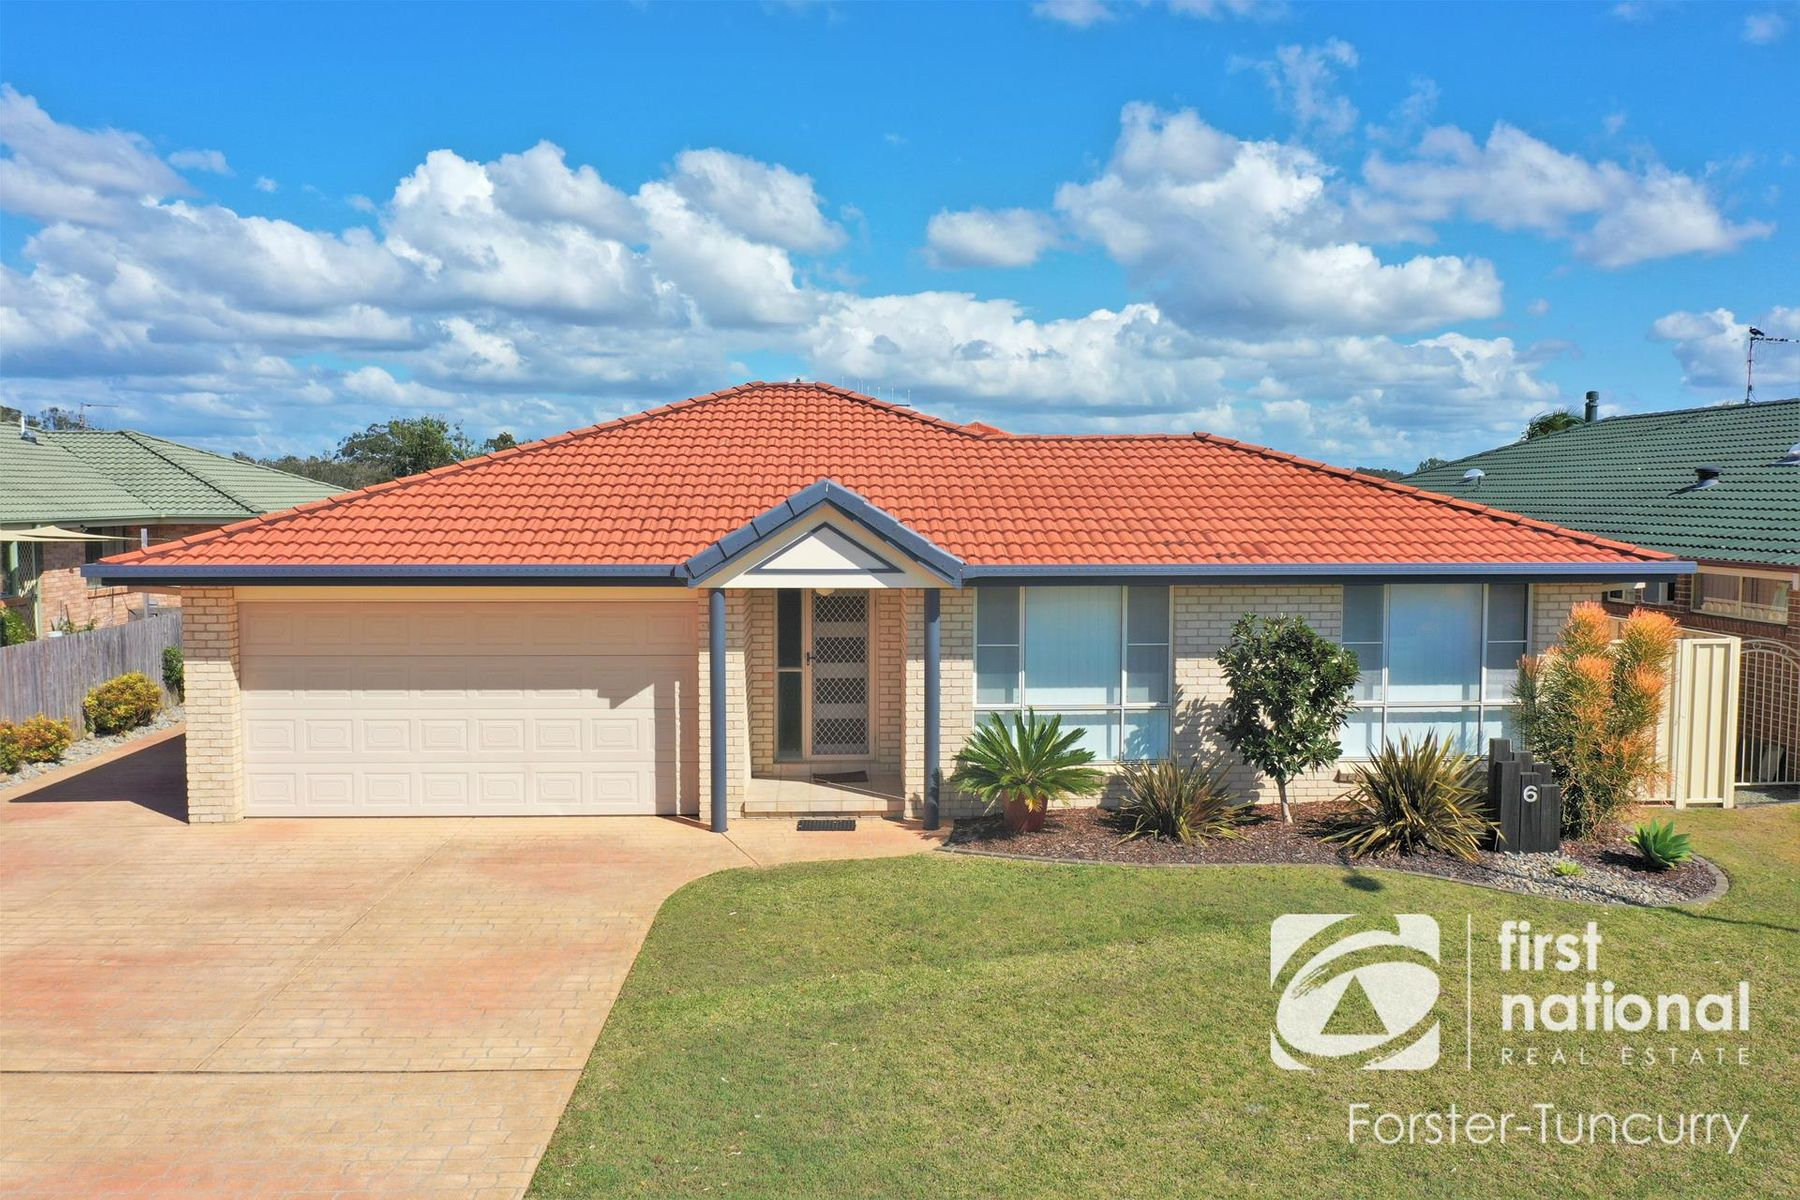 1/6 Asplenii Crescent, Tuncurry, NSW 2428